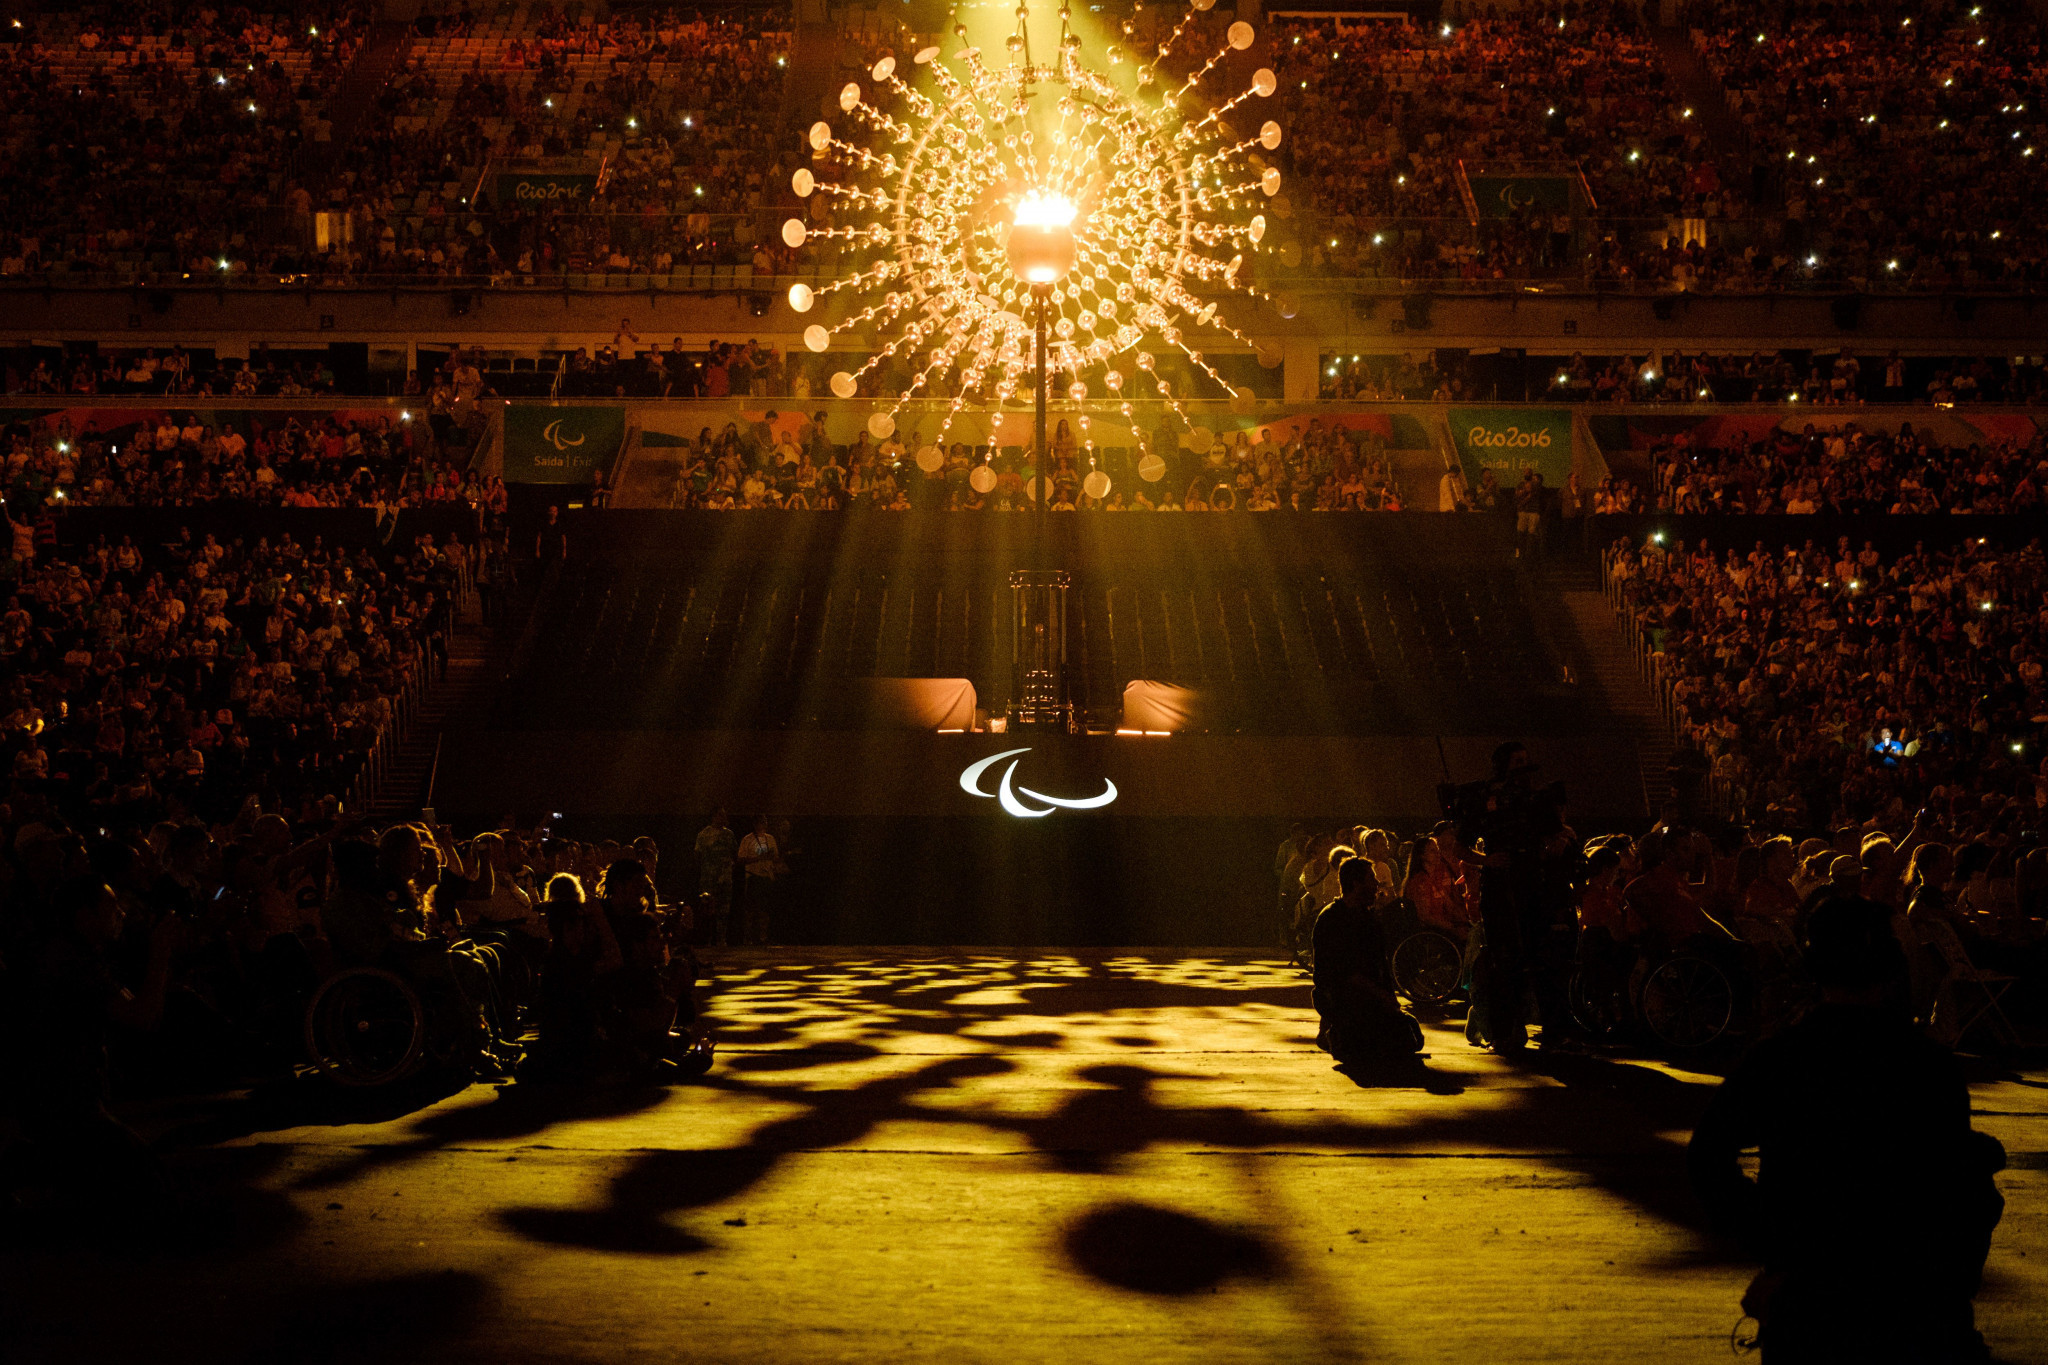 The Olympic Caldron is seen during the closing ceremony of the Rio 2016 Paralympic Games at the Maracana stadium in Rio de Janeiro on September 18, 2016 ©Getty Images